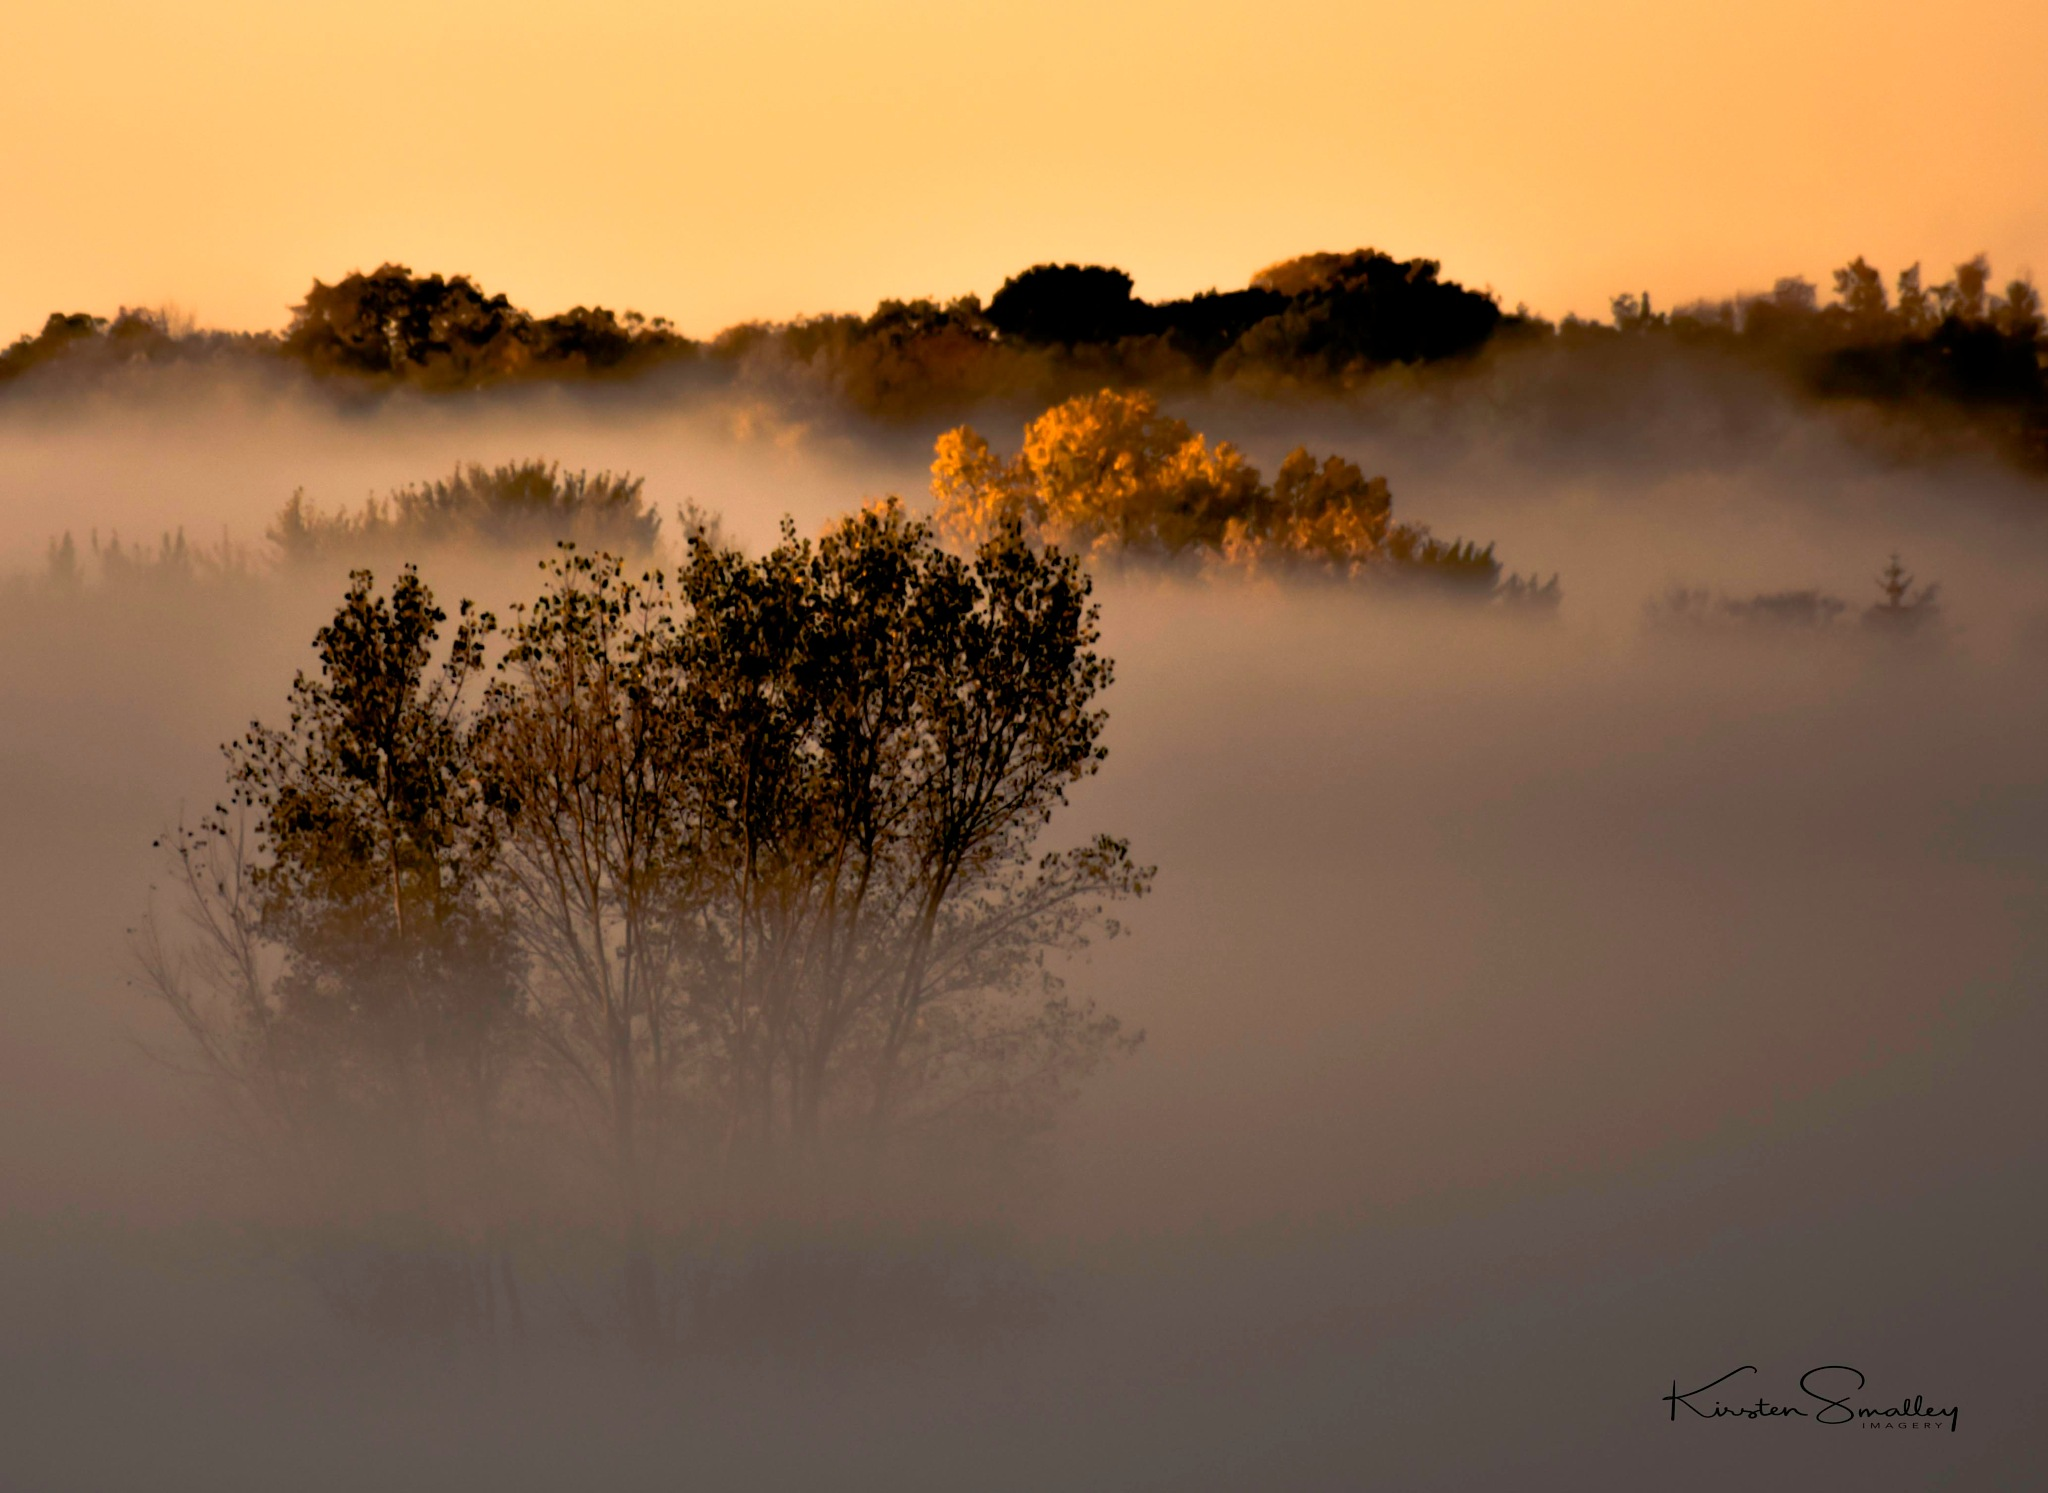 A Surreal Autum Misty Morning by Kirsten Smalley